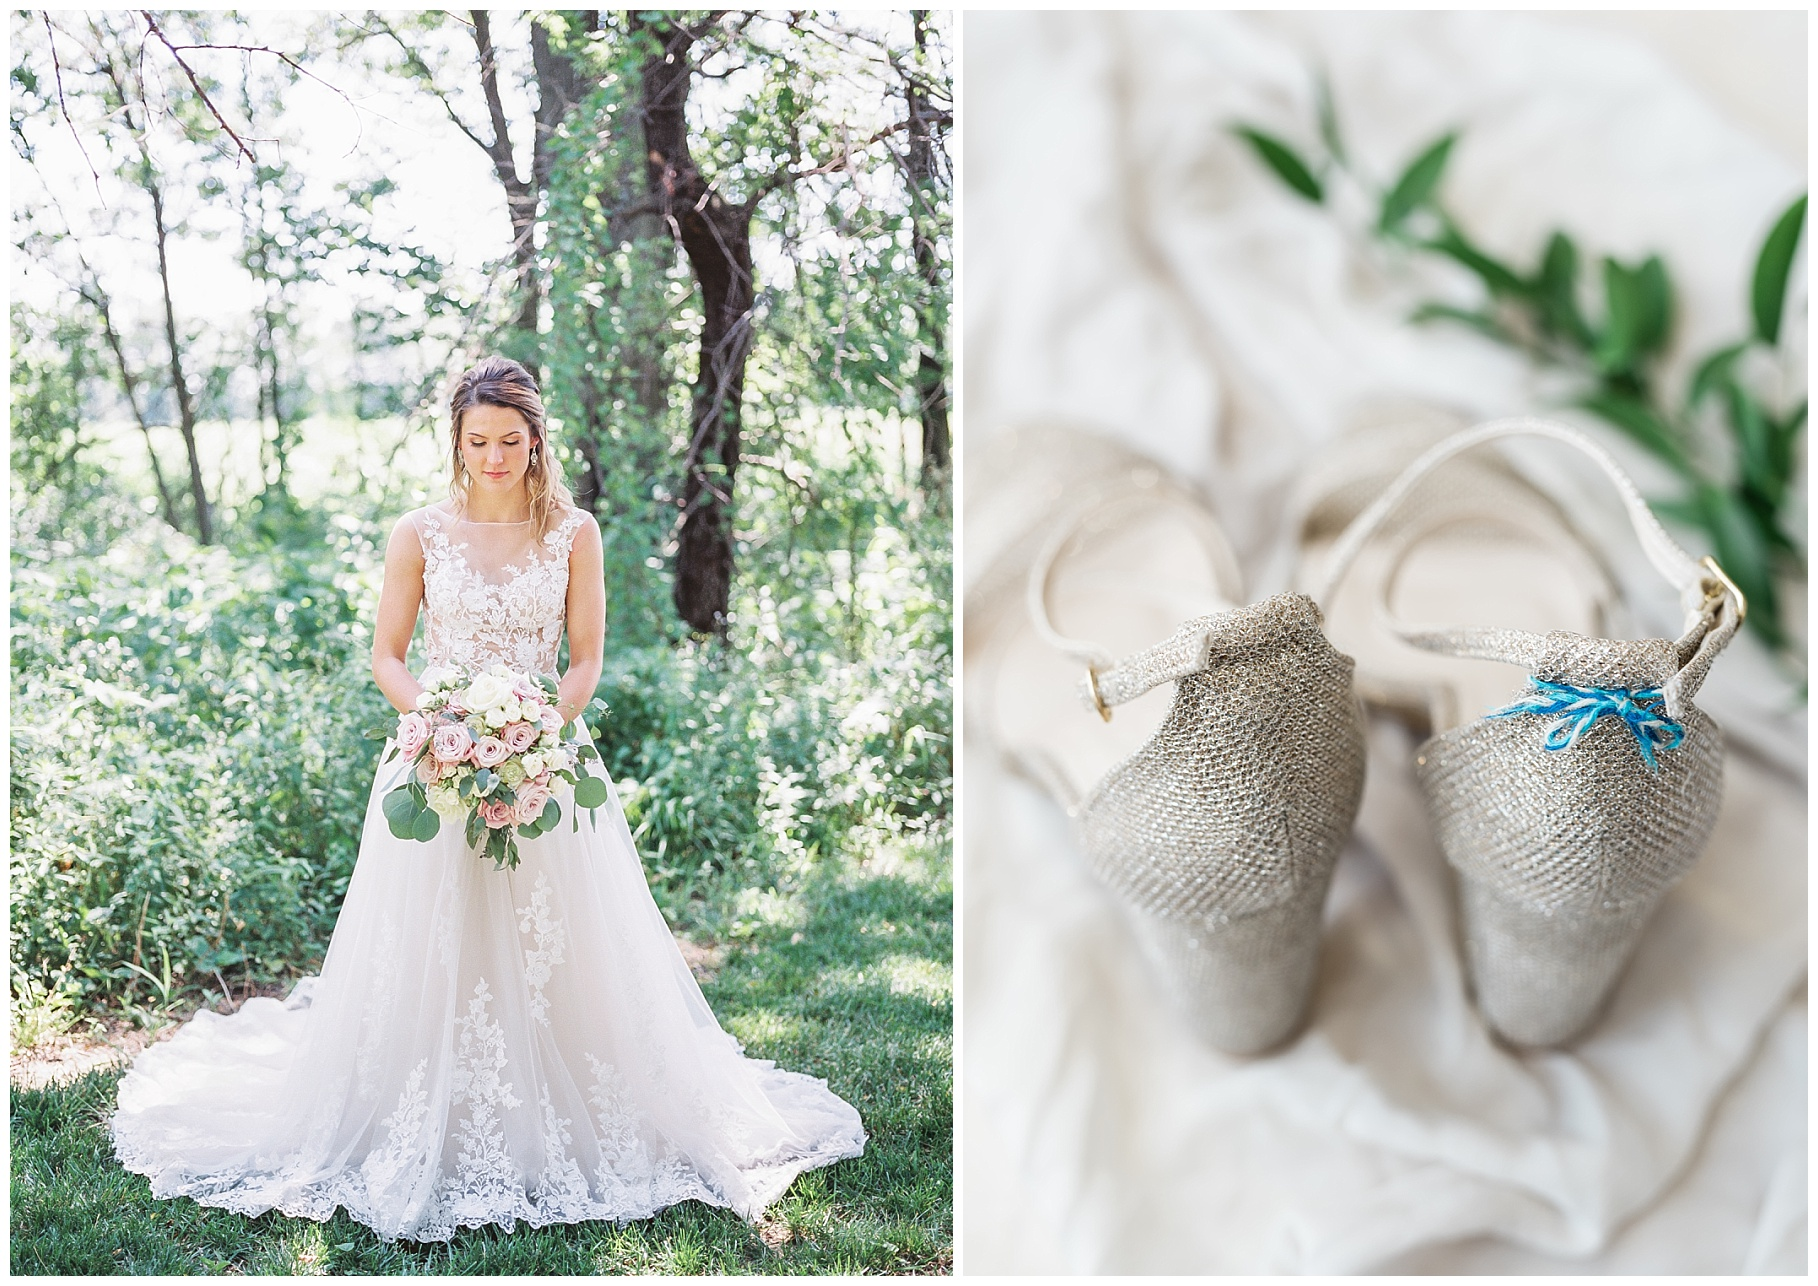 Classic Quartz, White, and Deep Green Wedding at Emerson Fields by Kelsi Kliethermes Photography Best Columbia Missouri and Maui Hawaii Wedding Photographer_0046.jpg